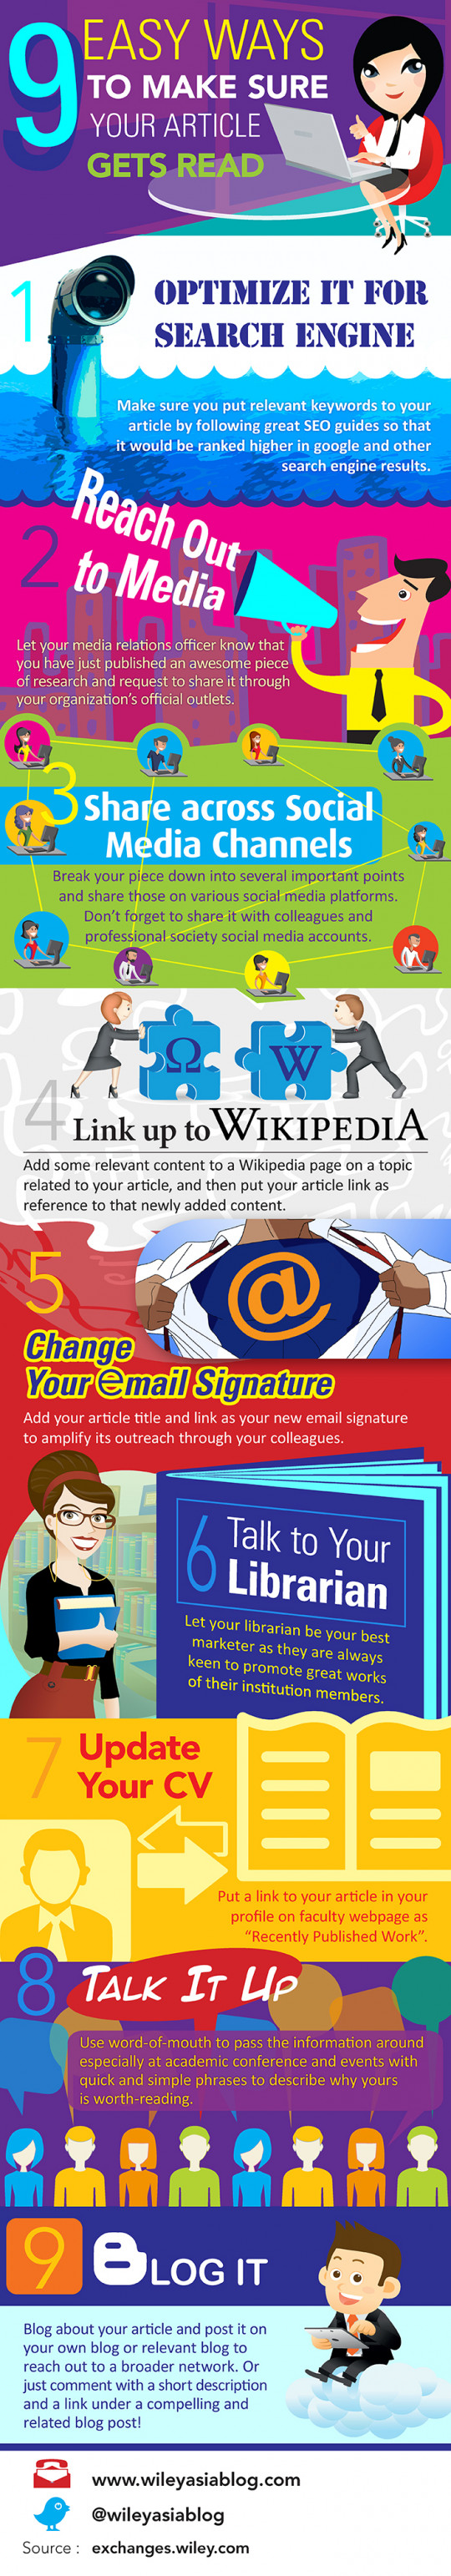 9 Ways to Make Sure Your Article Gets Read